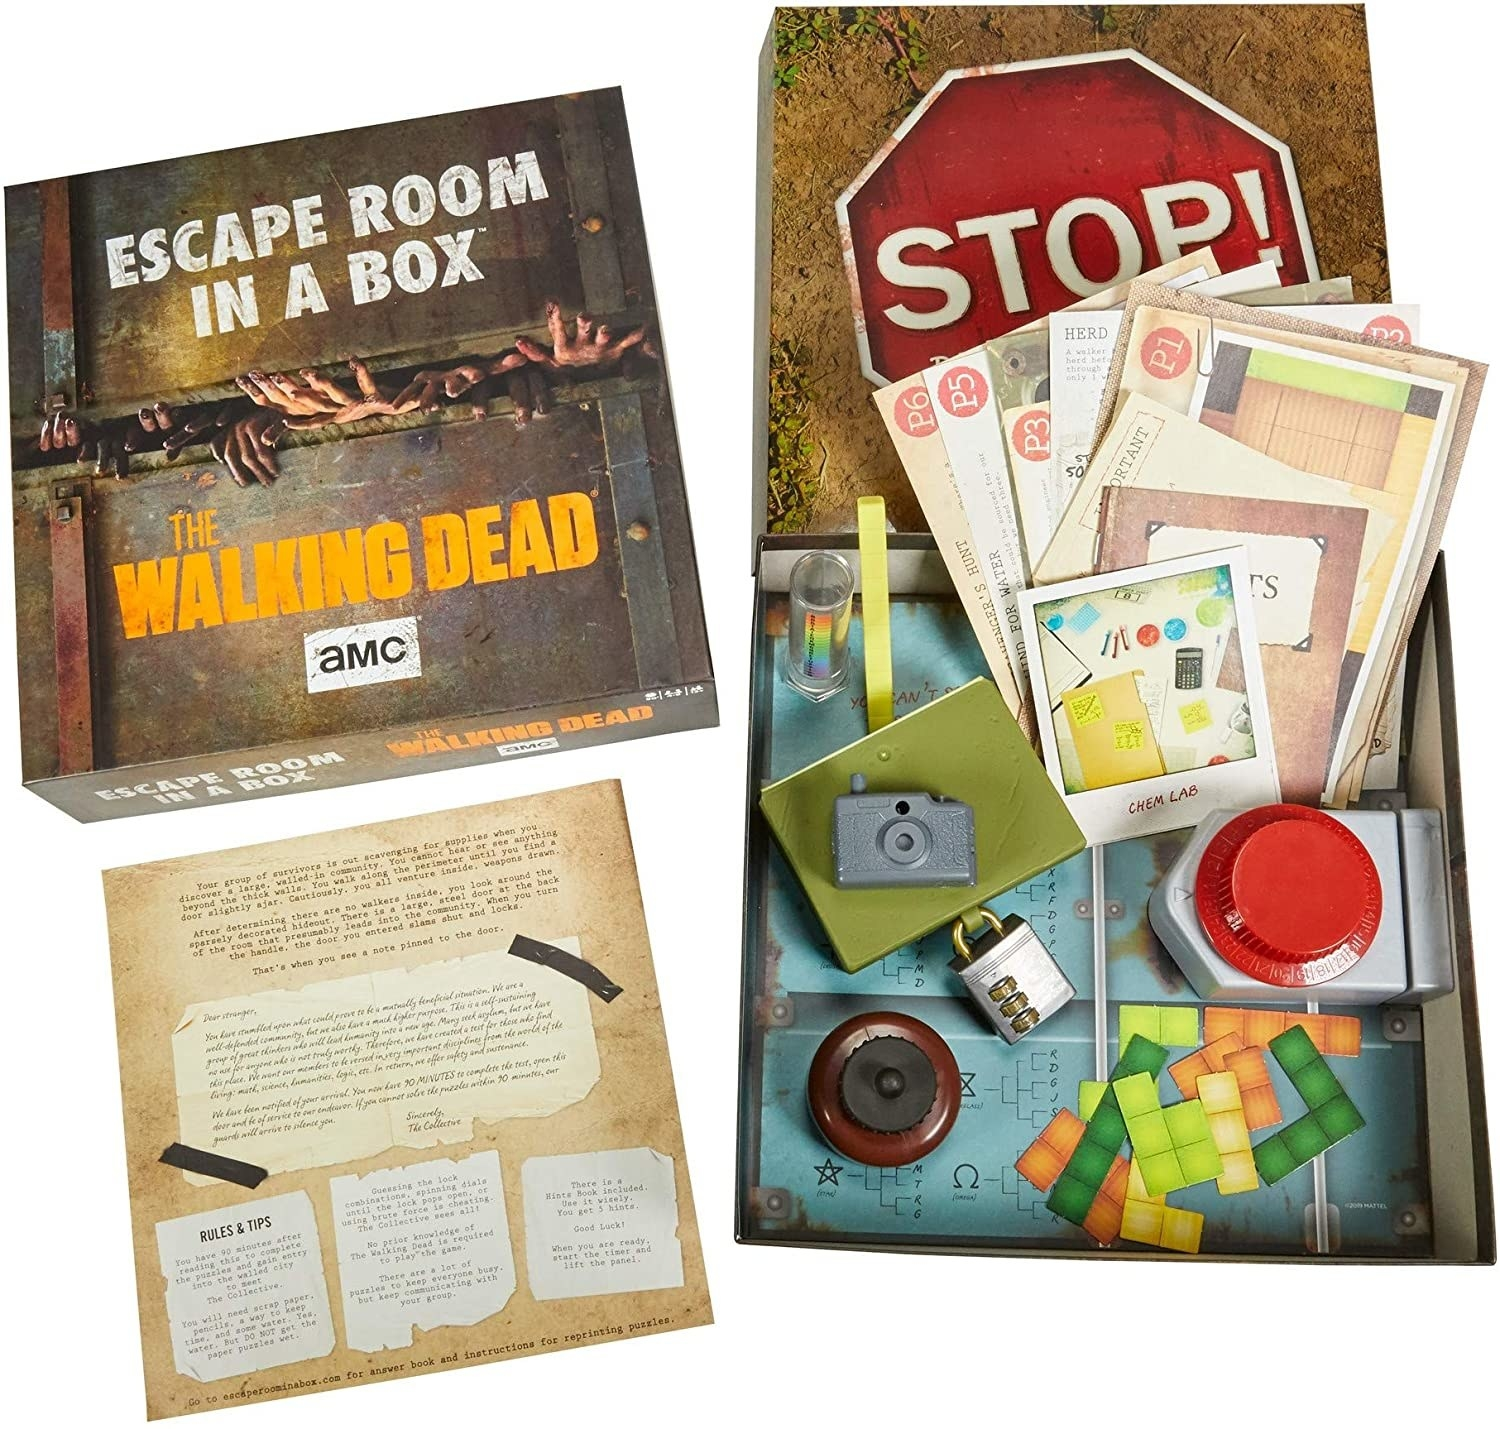 The Walking Dead escape the room board game